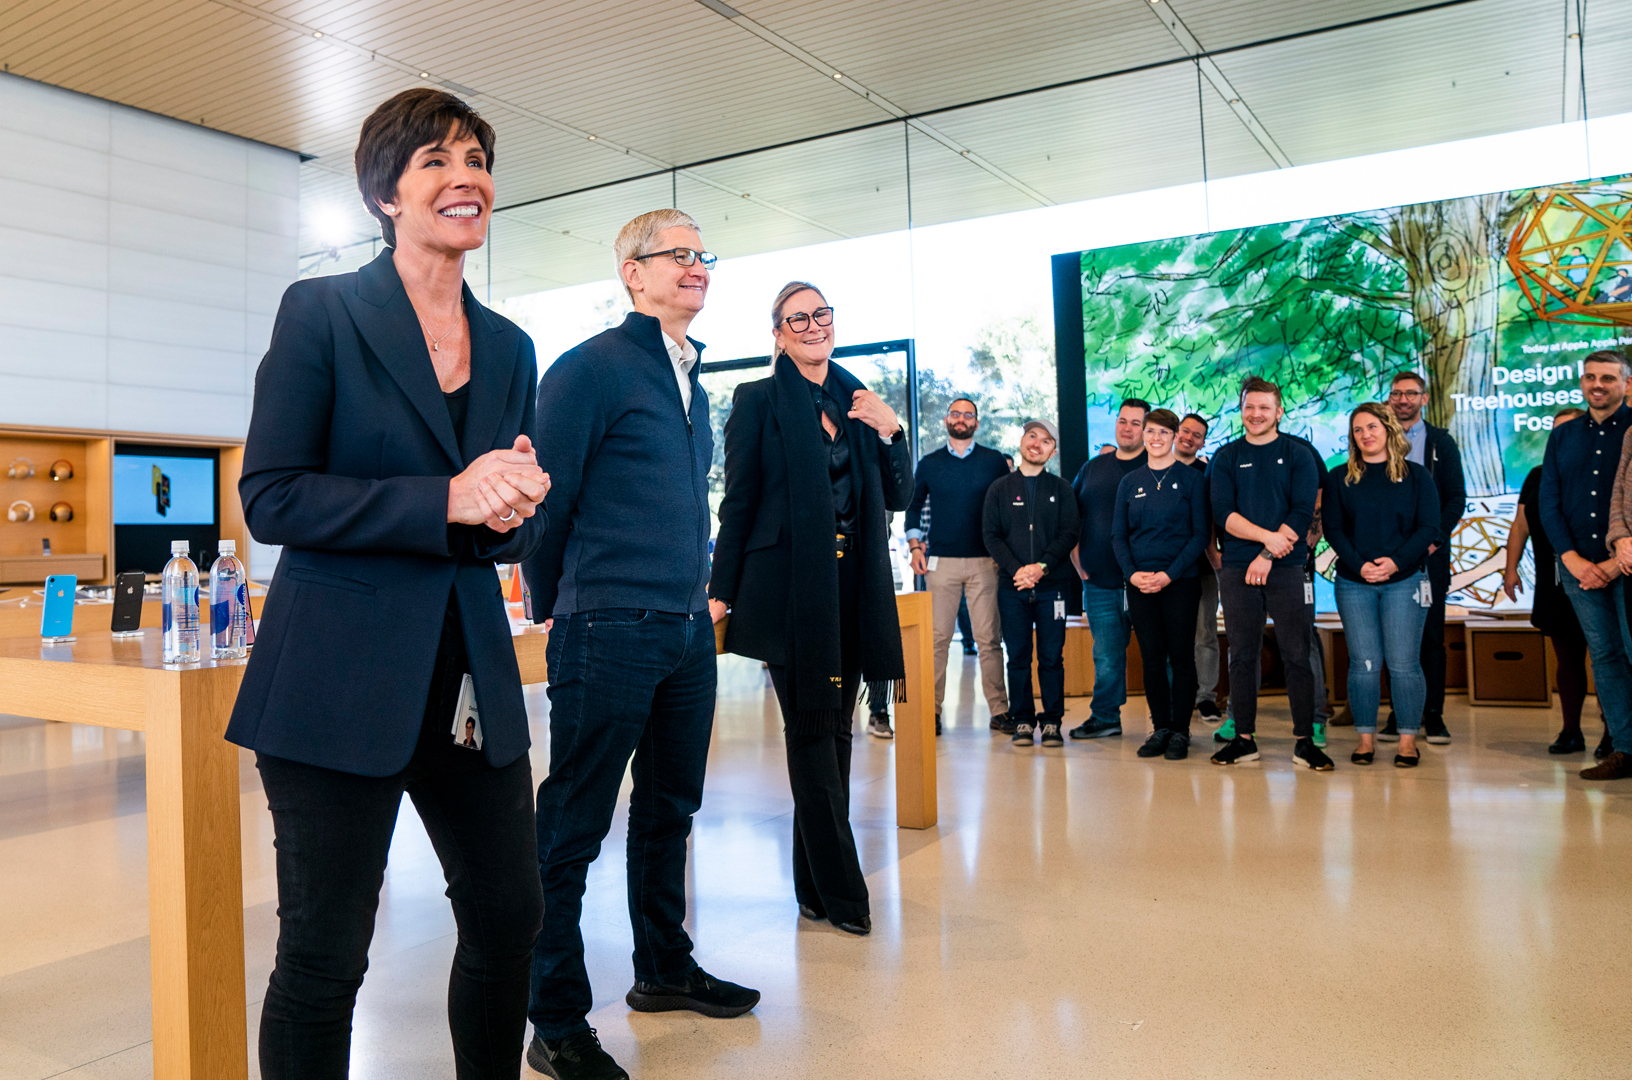 https://www.apple.com/newsroom/images/people/executives/Apple-Deirdre-OBrien-Apple-Park-02052019_big.jpg.large_2x.jpg